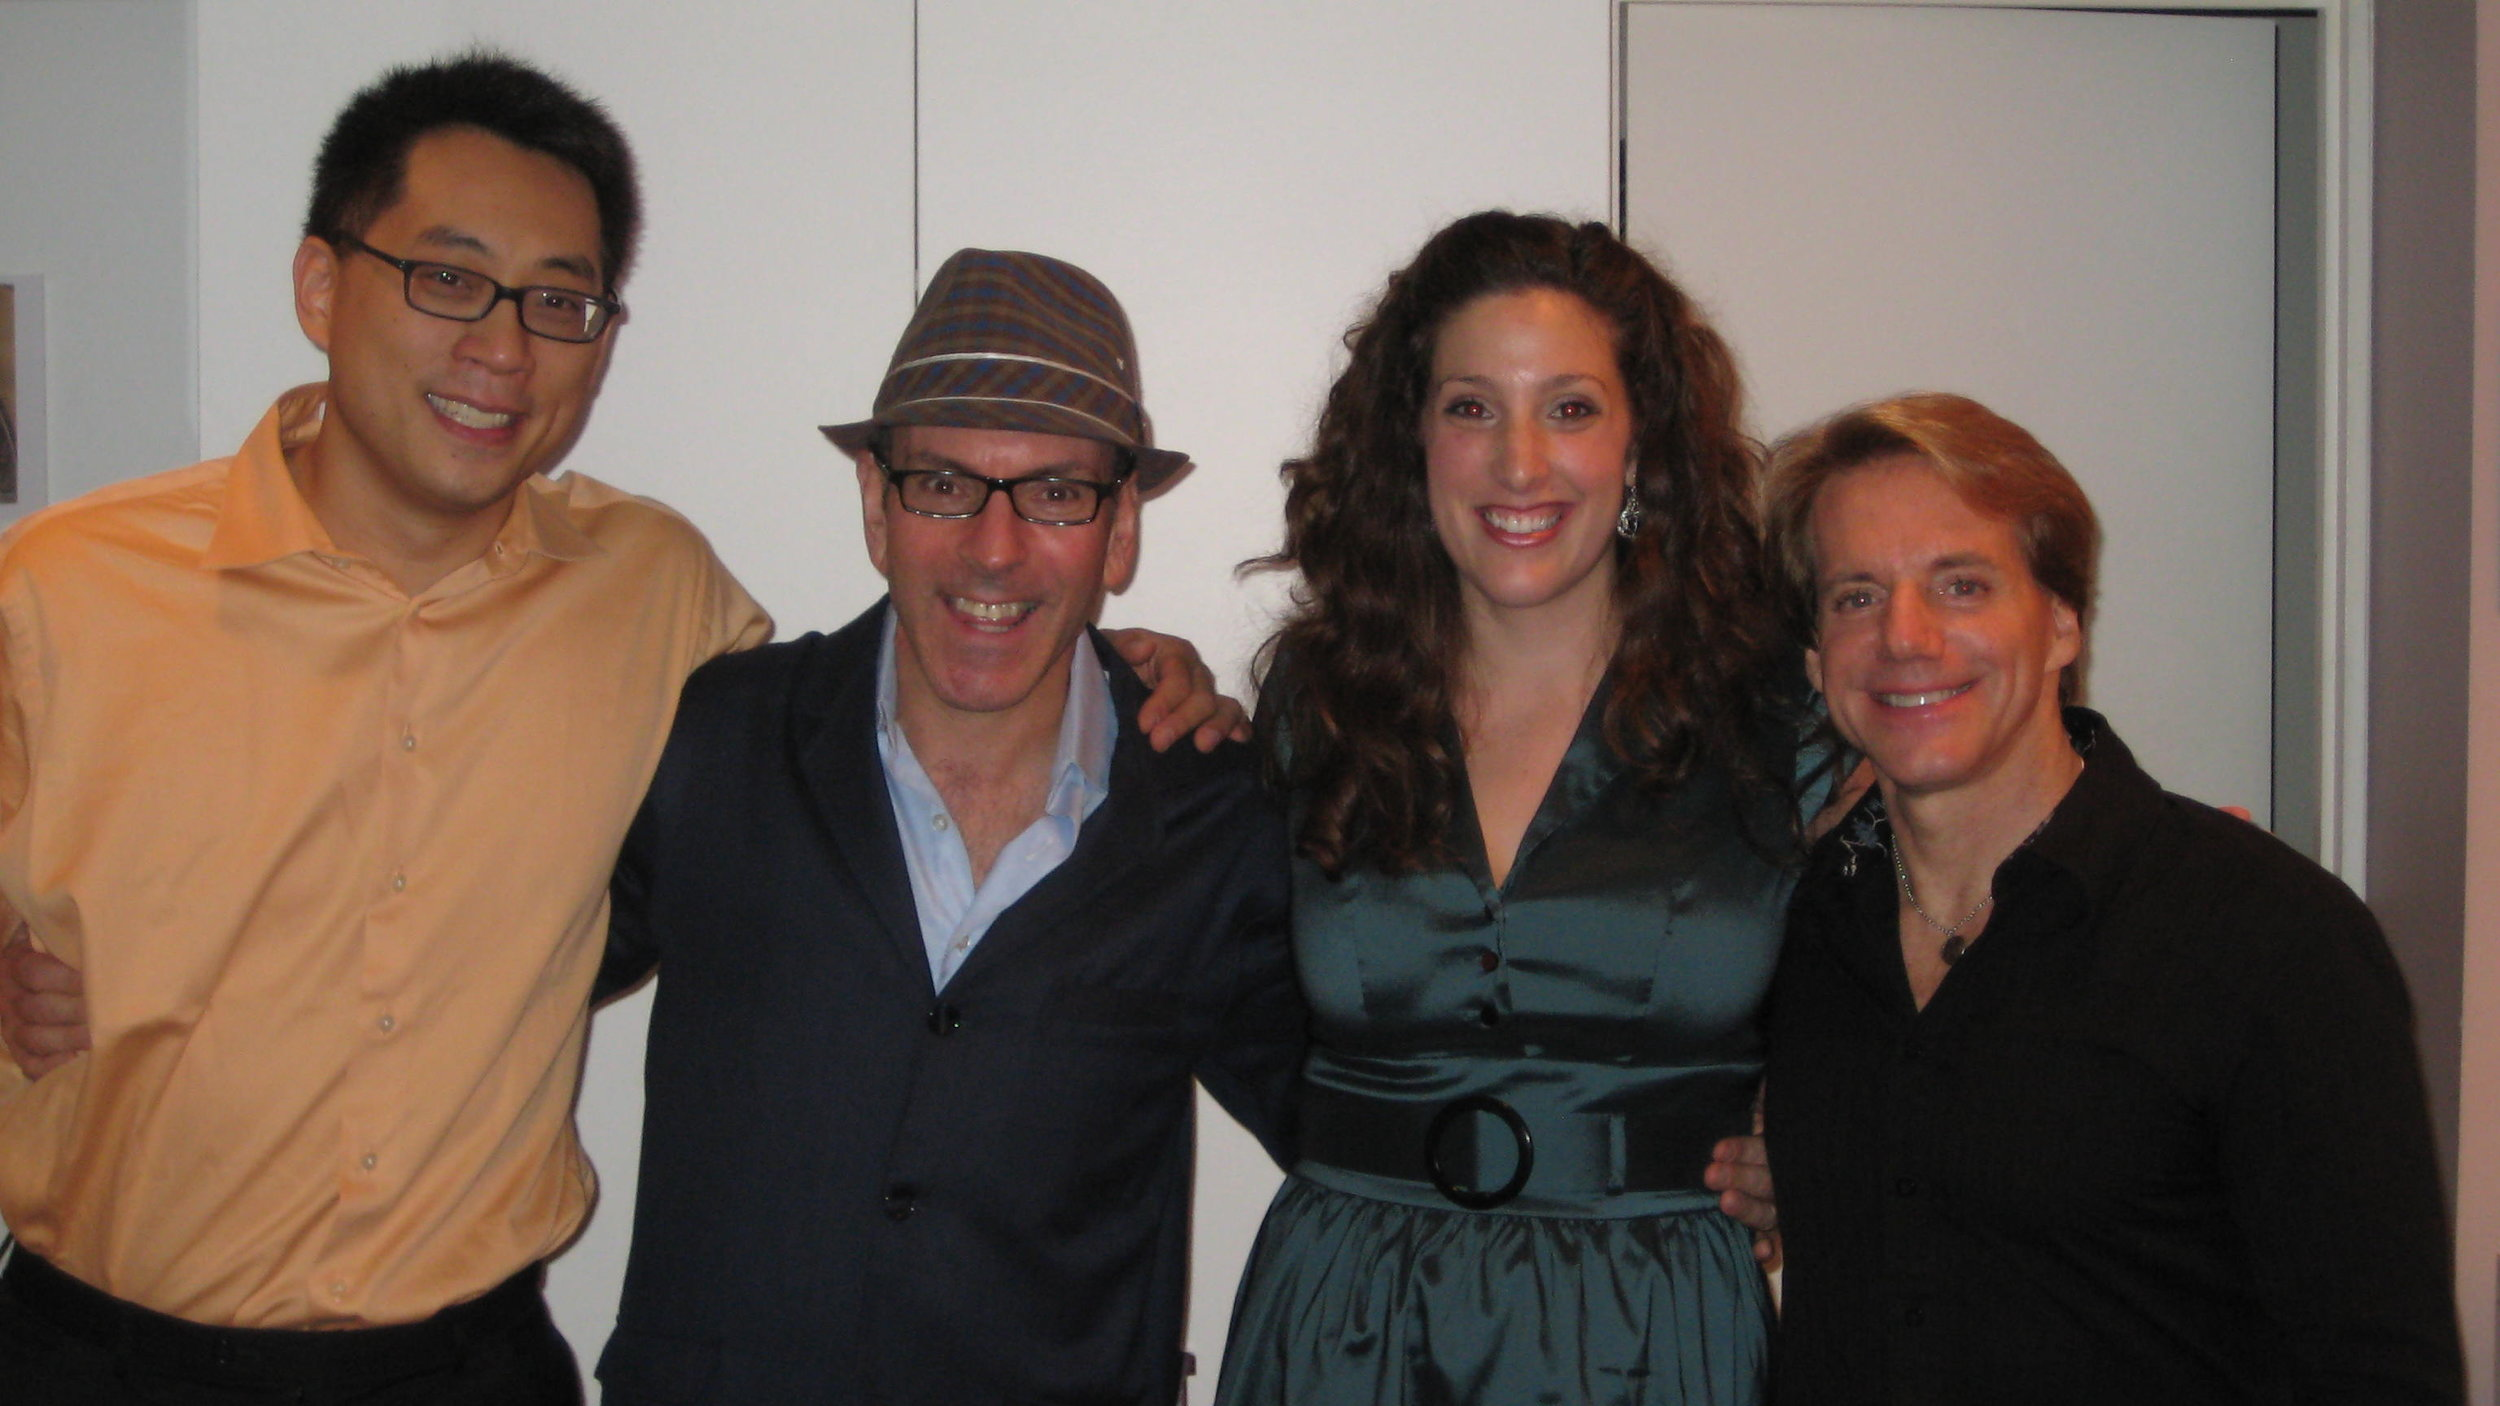 with pianist Melvin Chan, composer Ricky Ian Gordon, clarinetist Todd Palmer, Orpheus and Euridice, Five Boroughs Music Festival